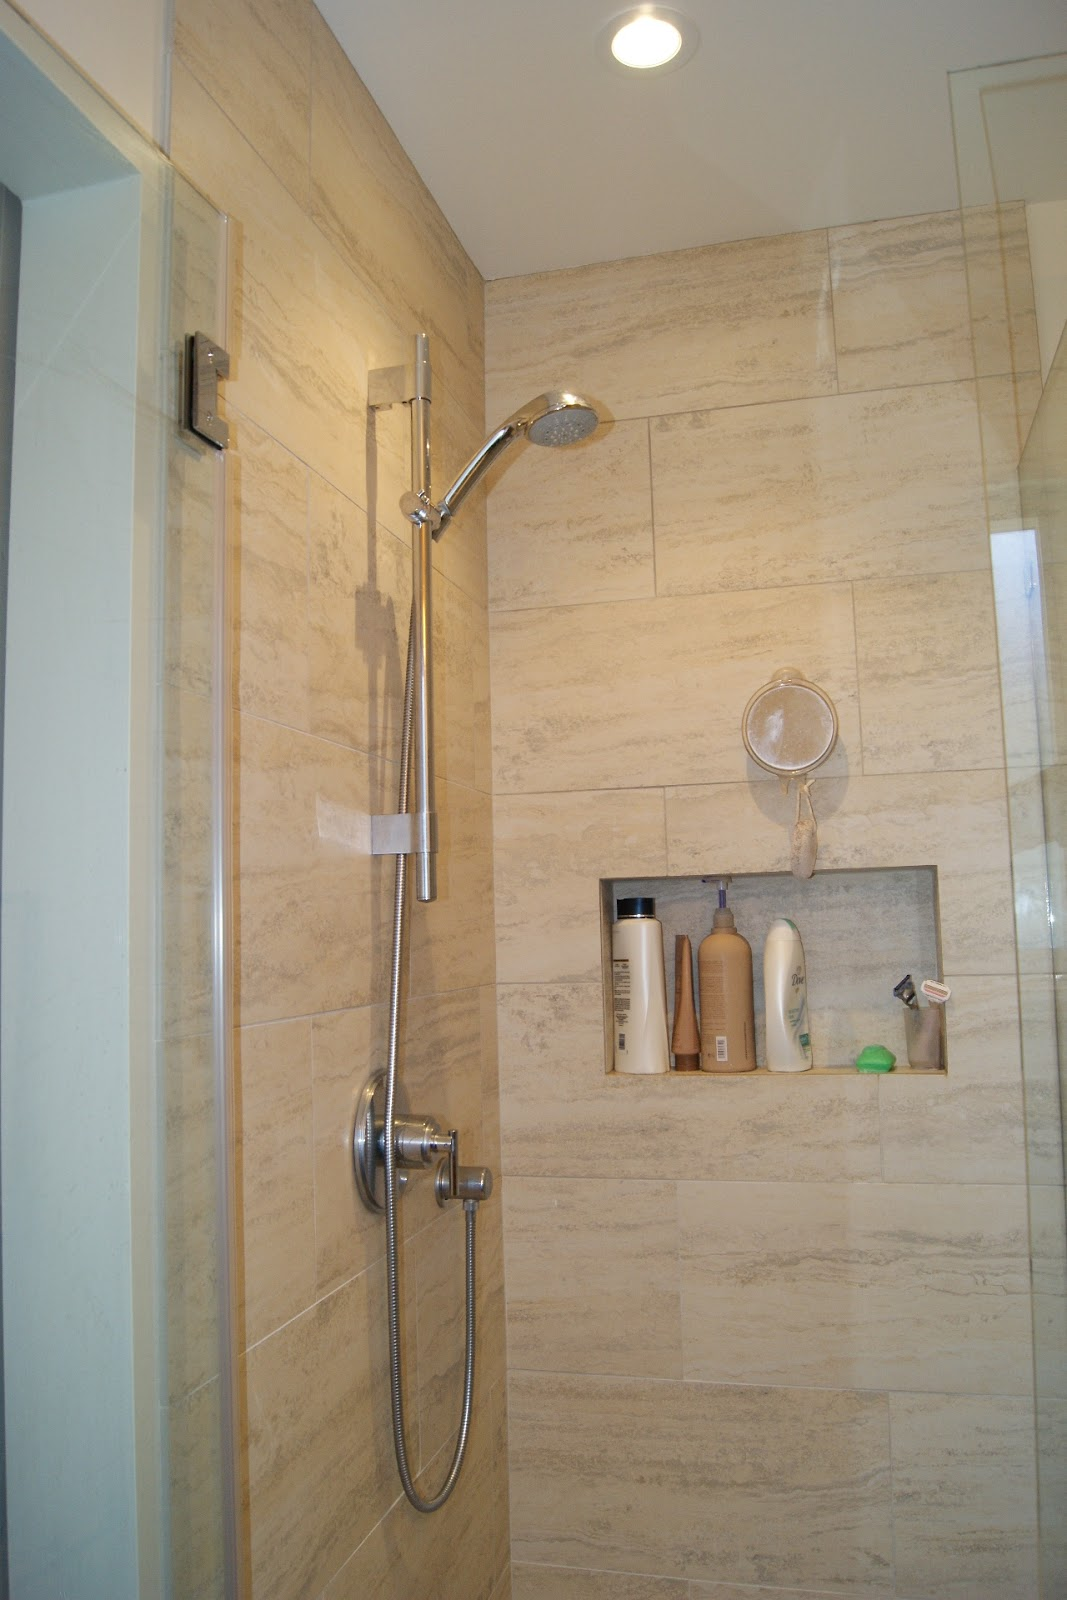 Porcelain Tiling Idea For Doorless Shower Built In Shelf For Storing